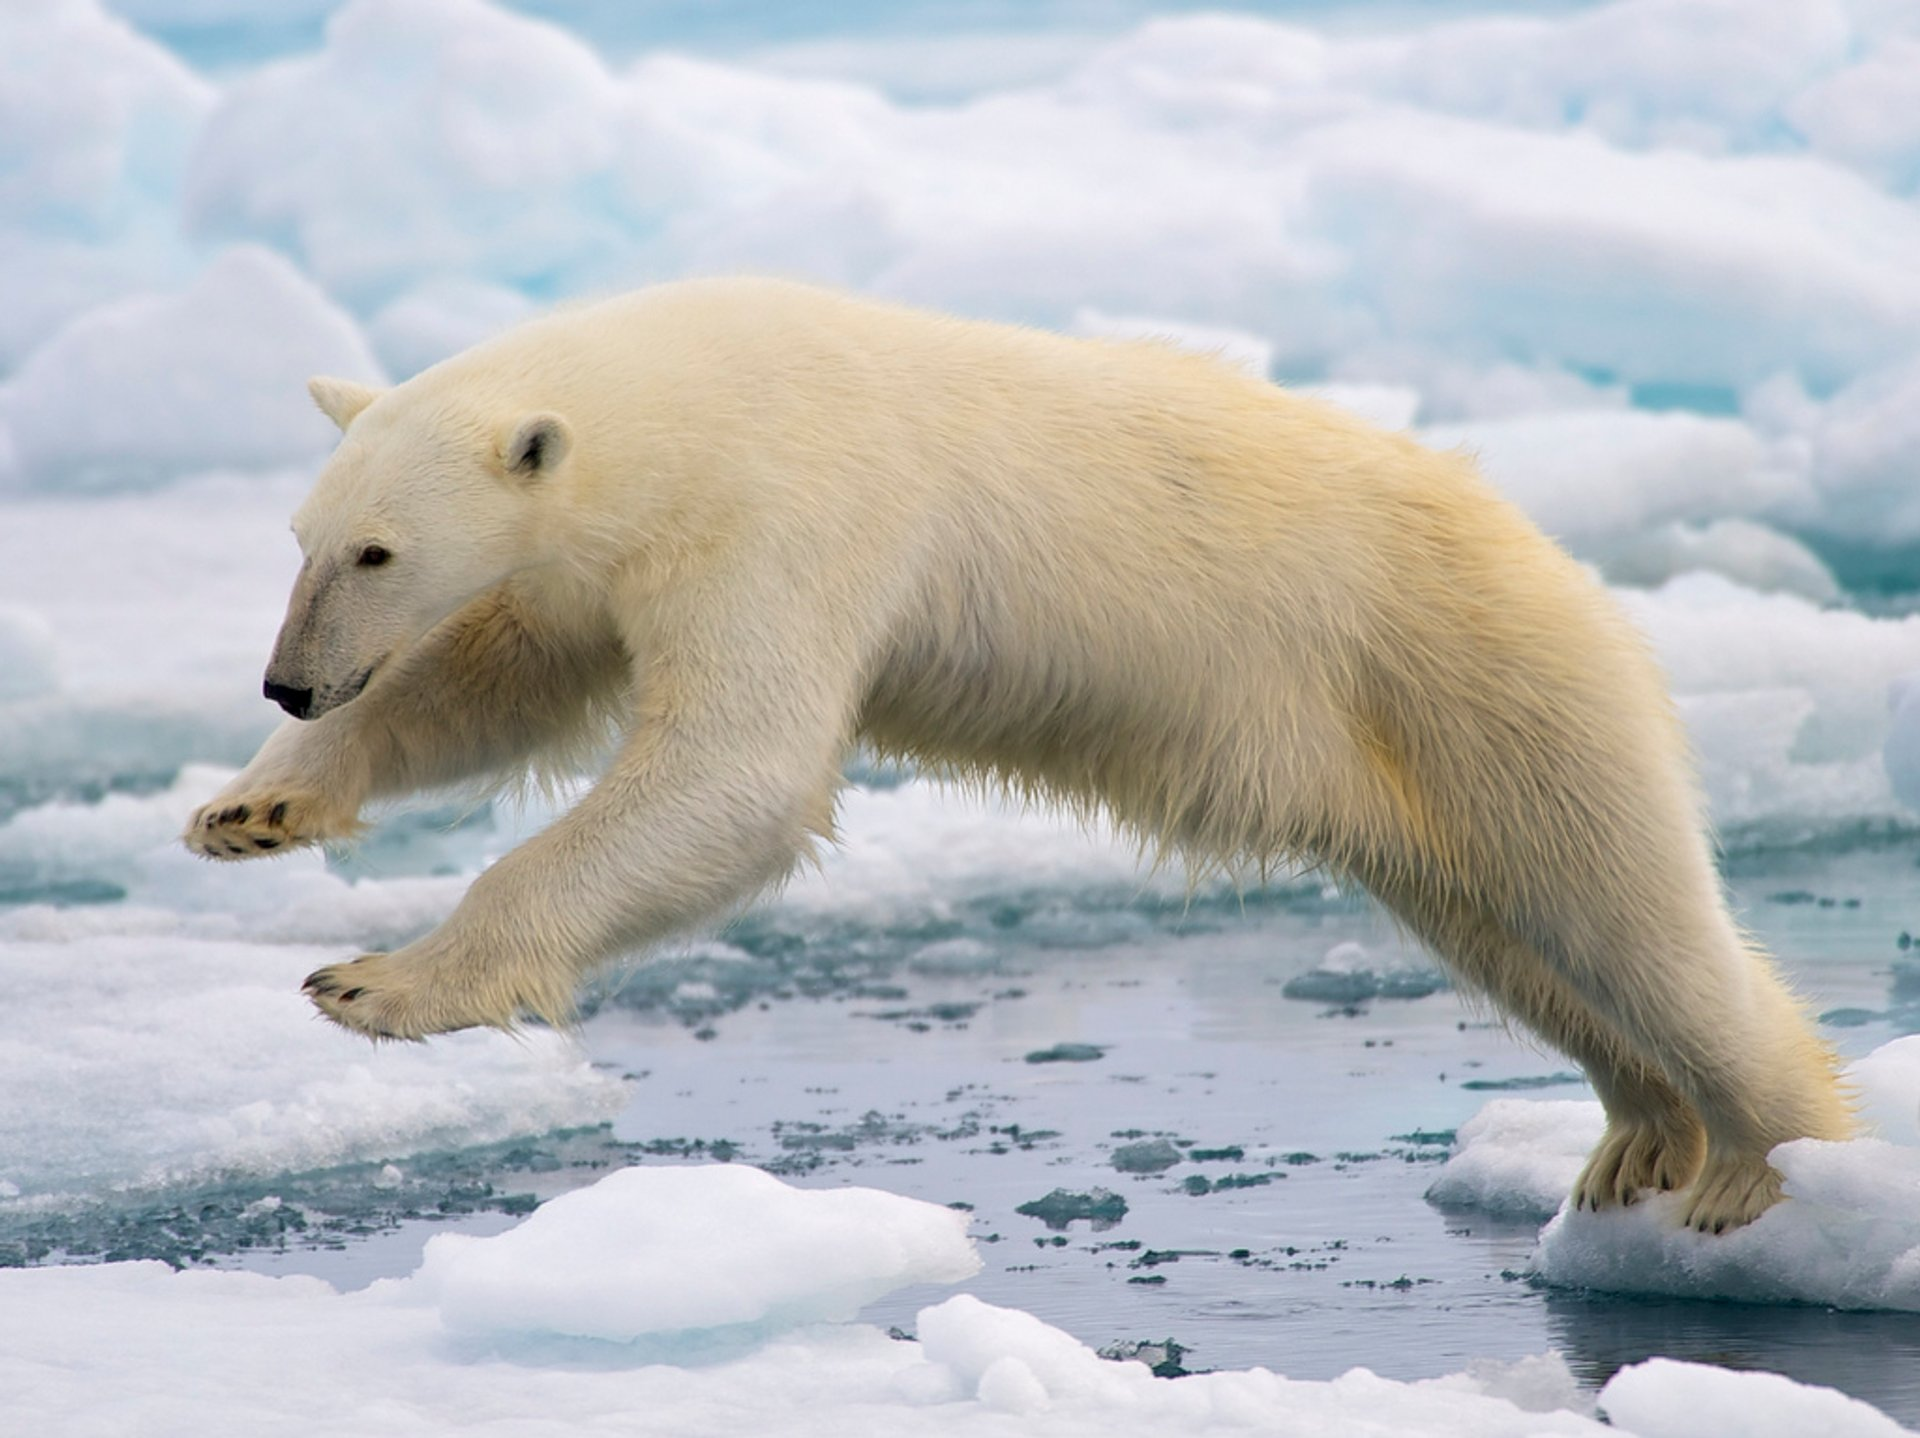 Polar Bear Watching in Svalbard 2020 - Best Time